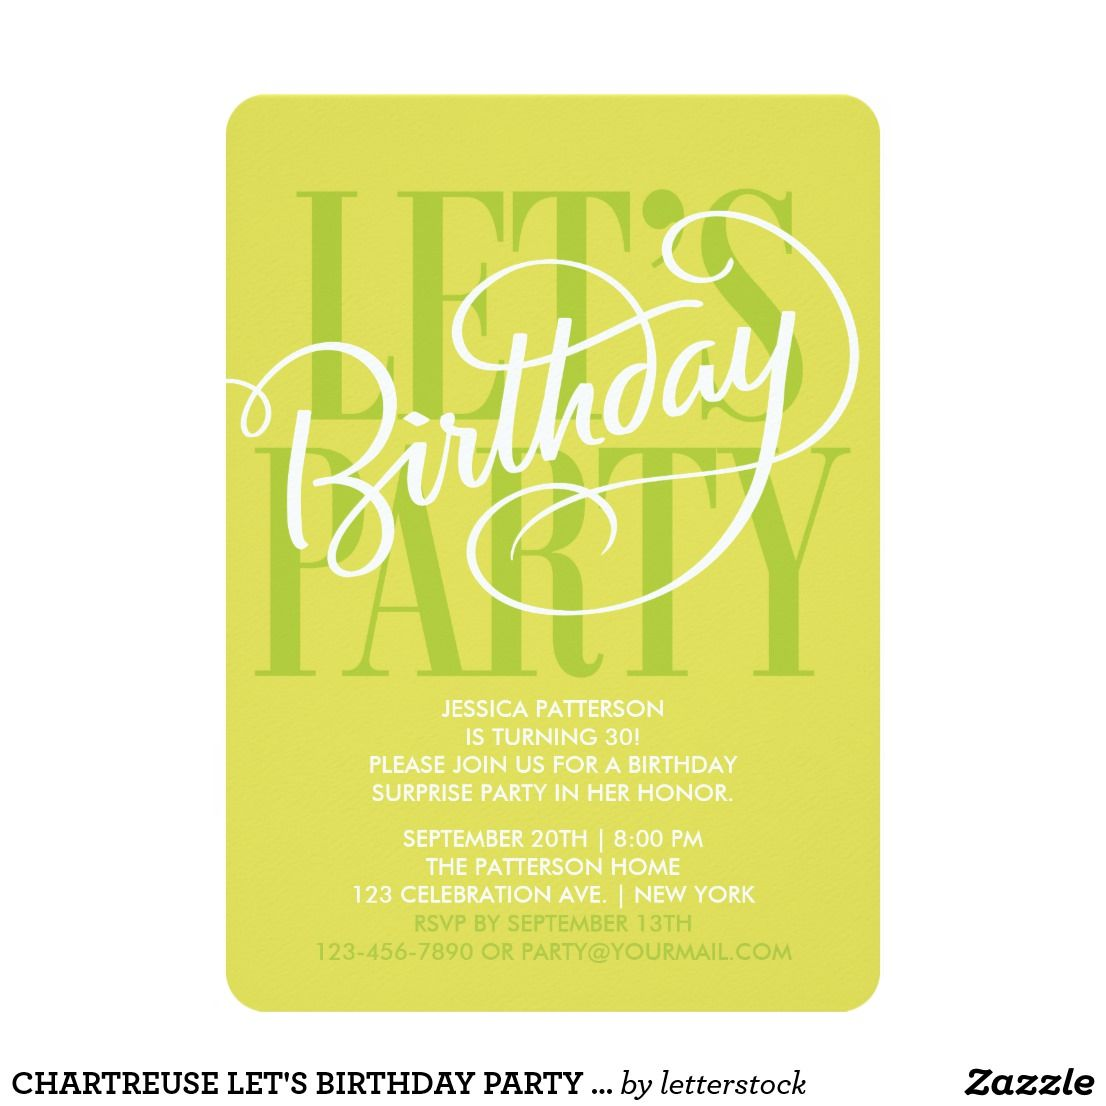 Chartreuse lets birthday party invitation birthday original chartreuse lets birthday party invitation birthday original custom hand lettering by letterstock stopboris Image collections